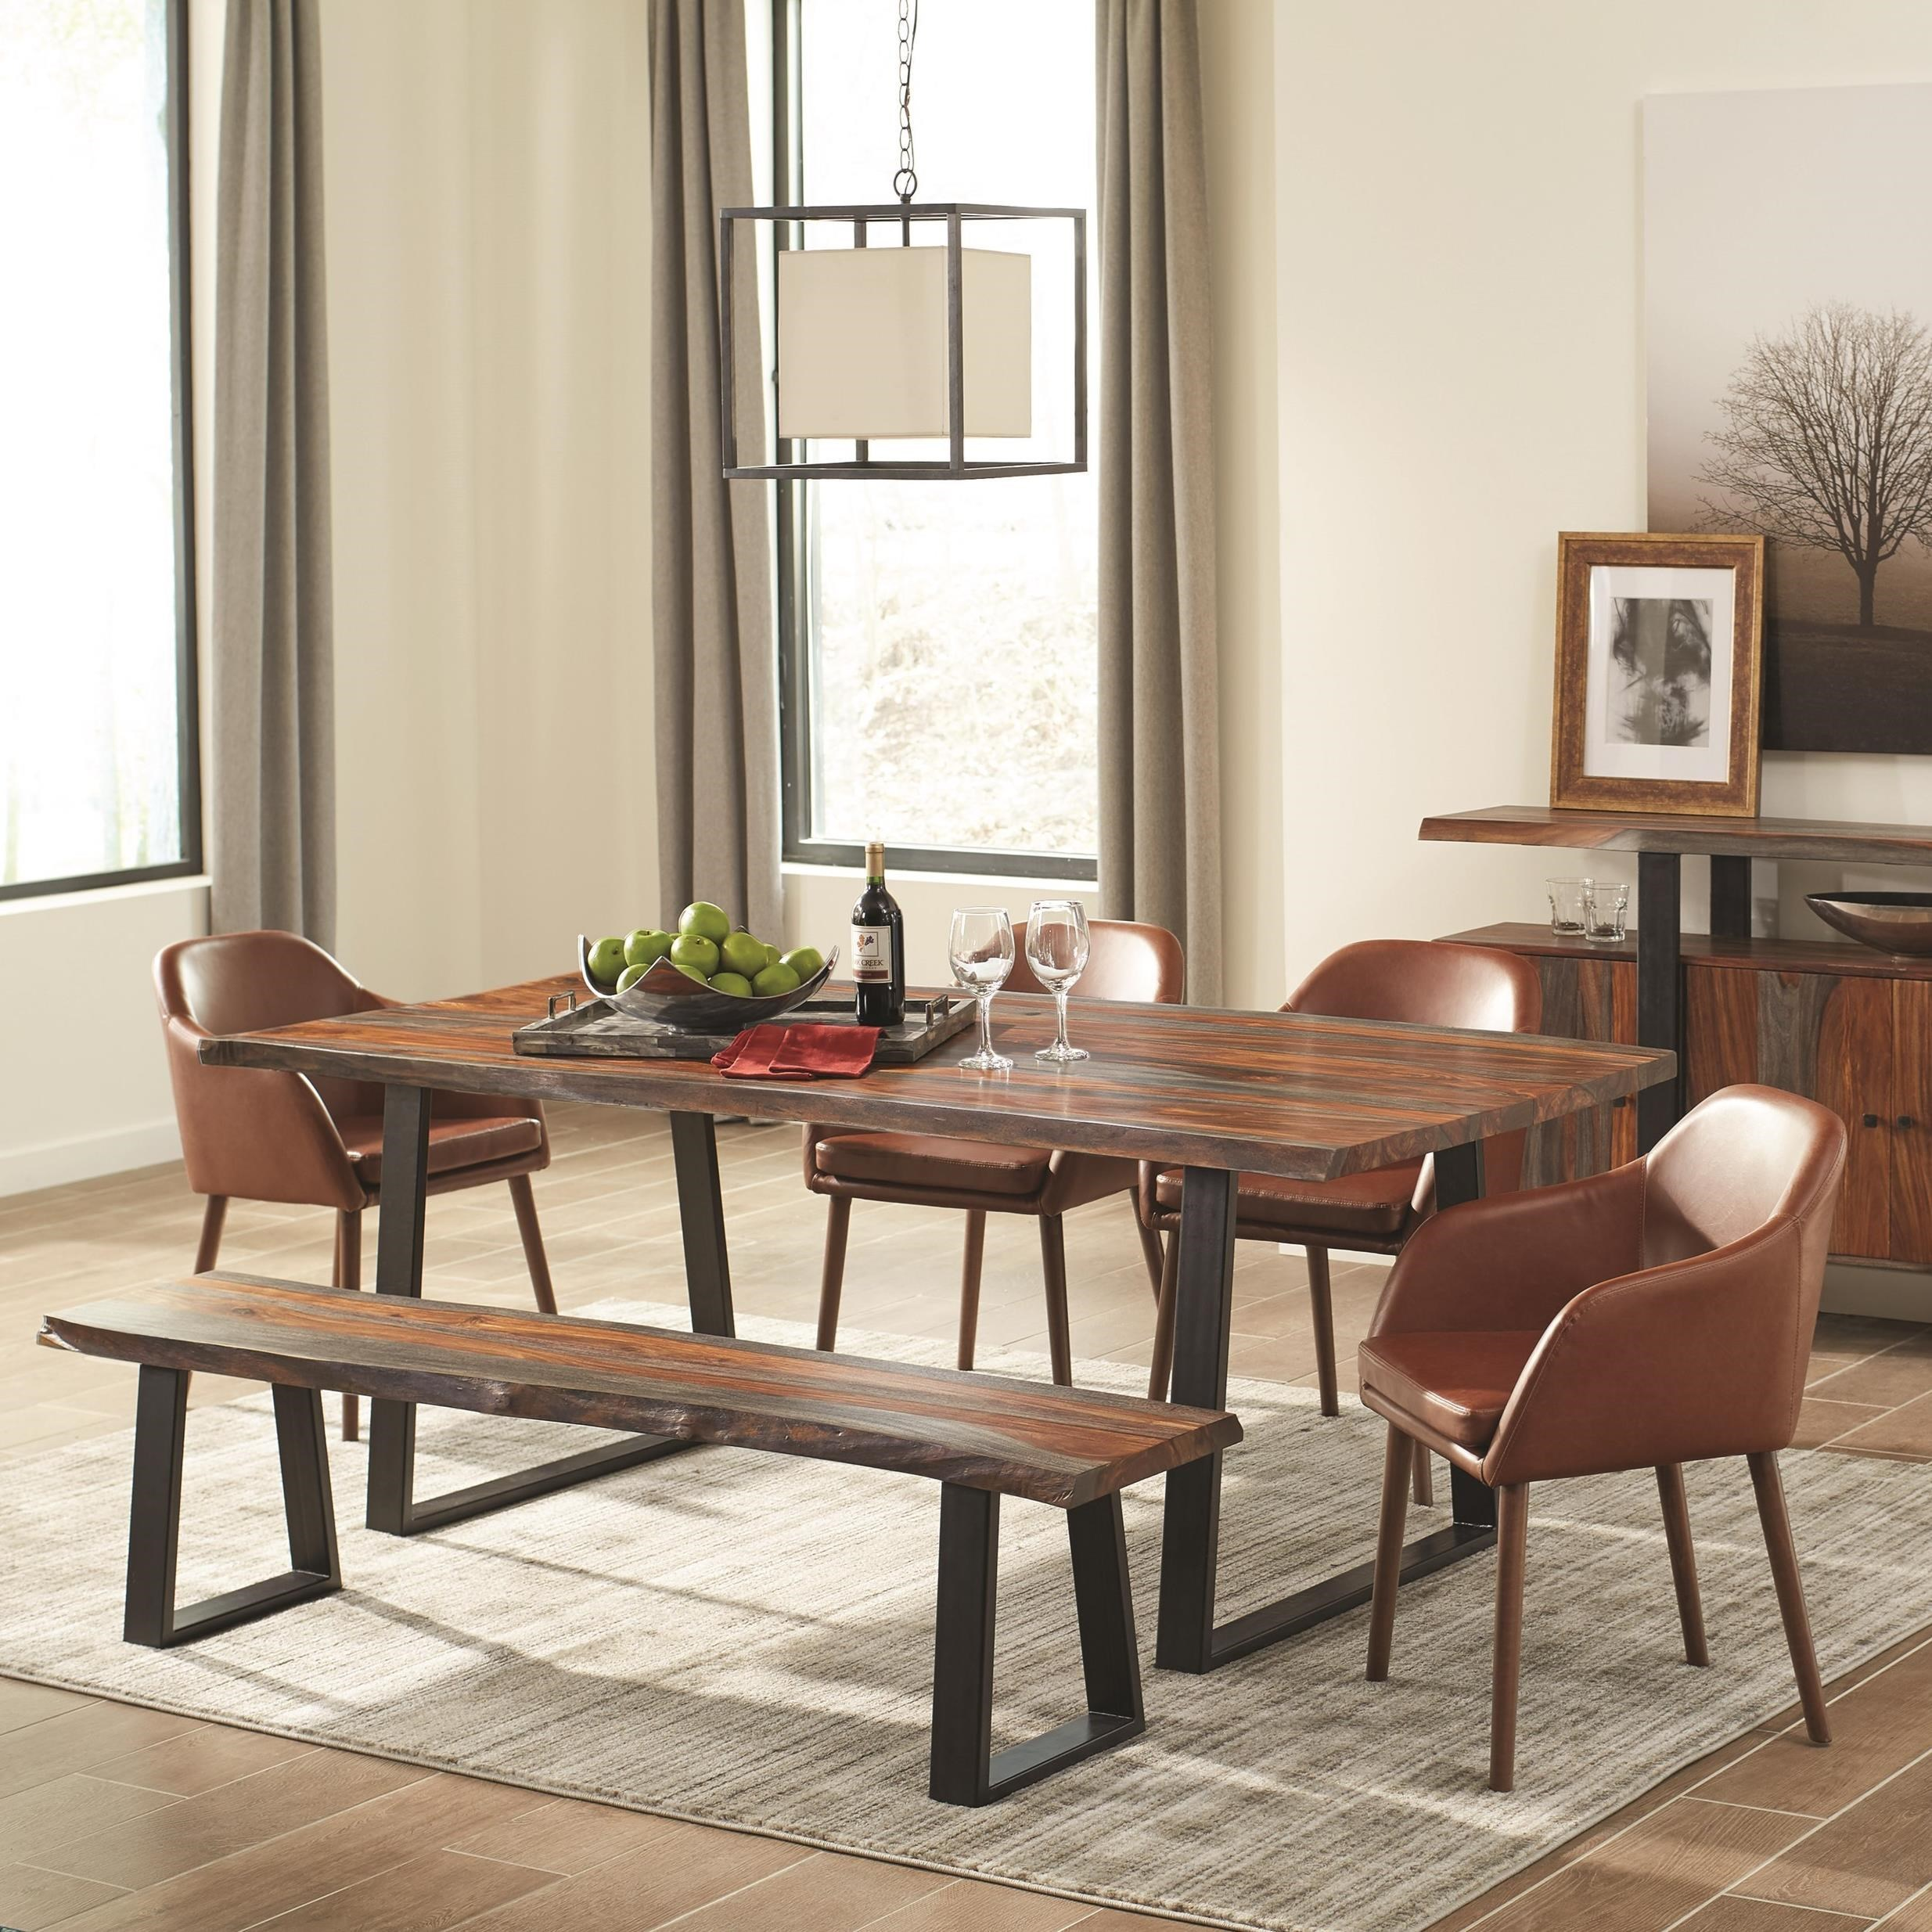 Scott Living Jamestown Rustic Dining Room Set With Bench   Coaster Fine  Furniture